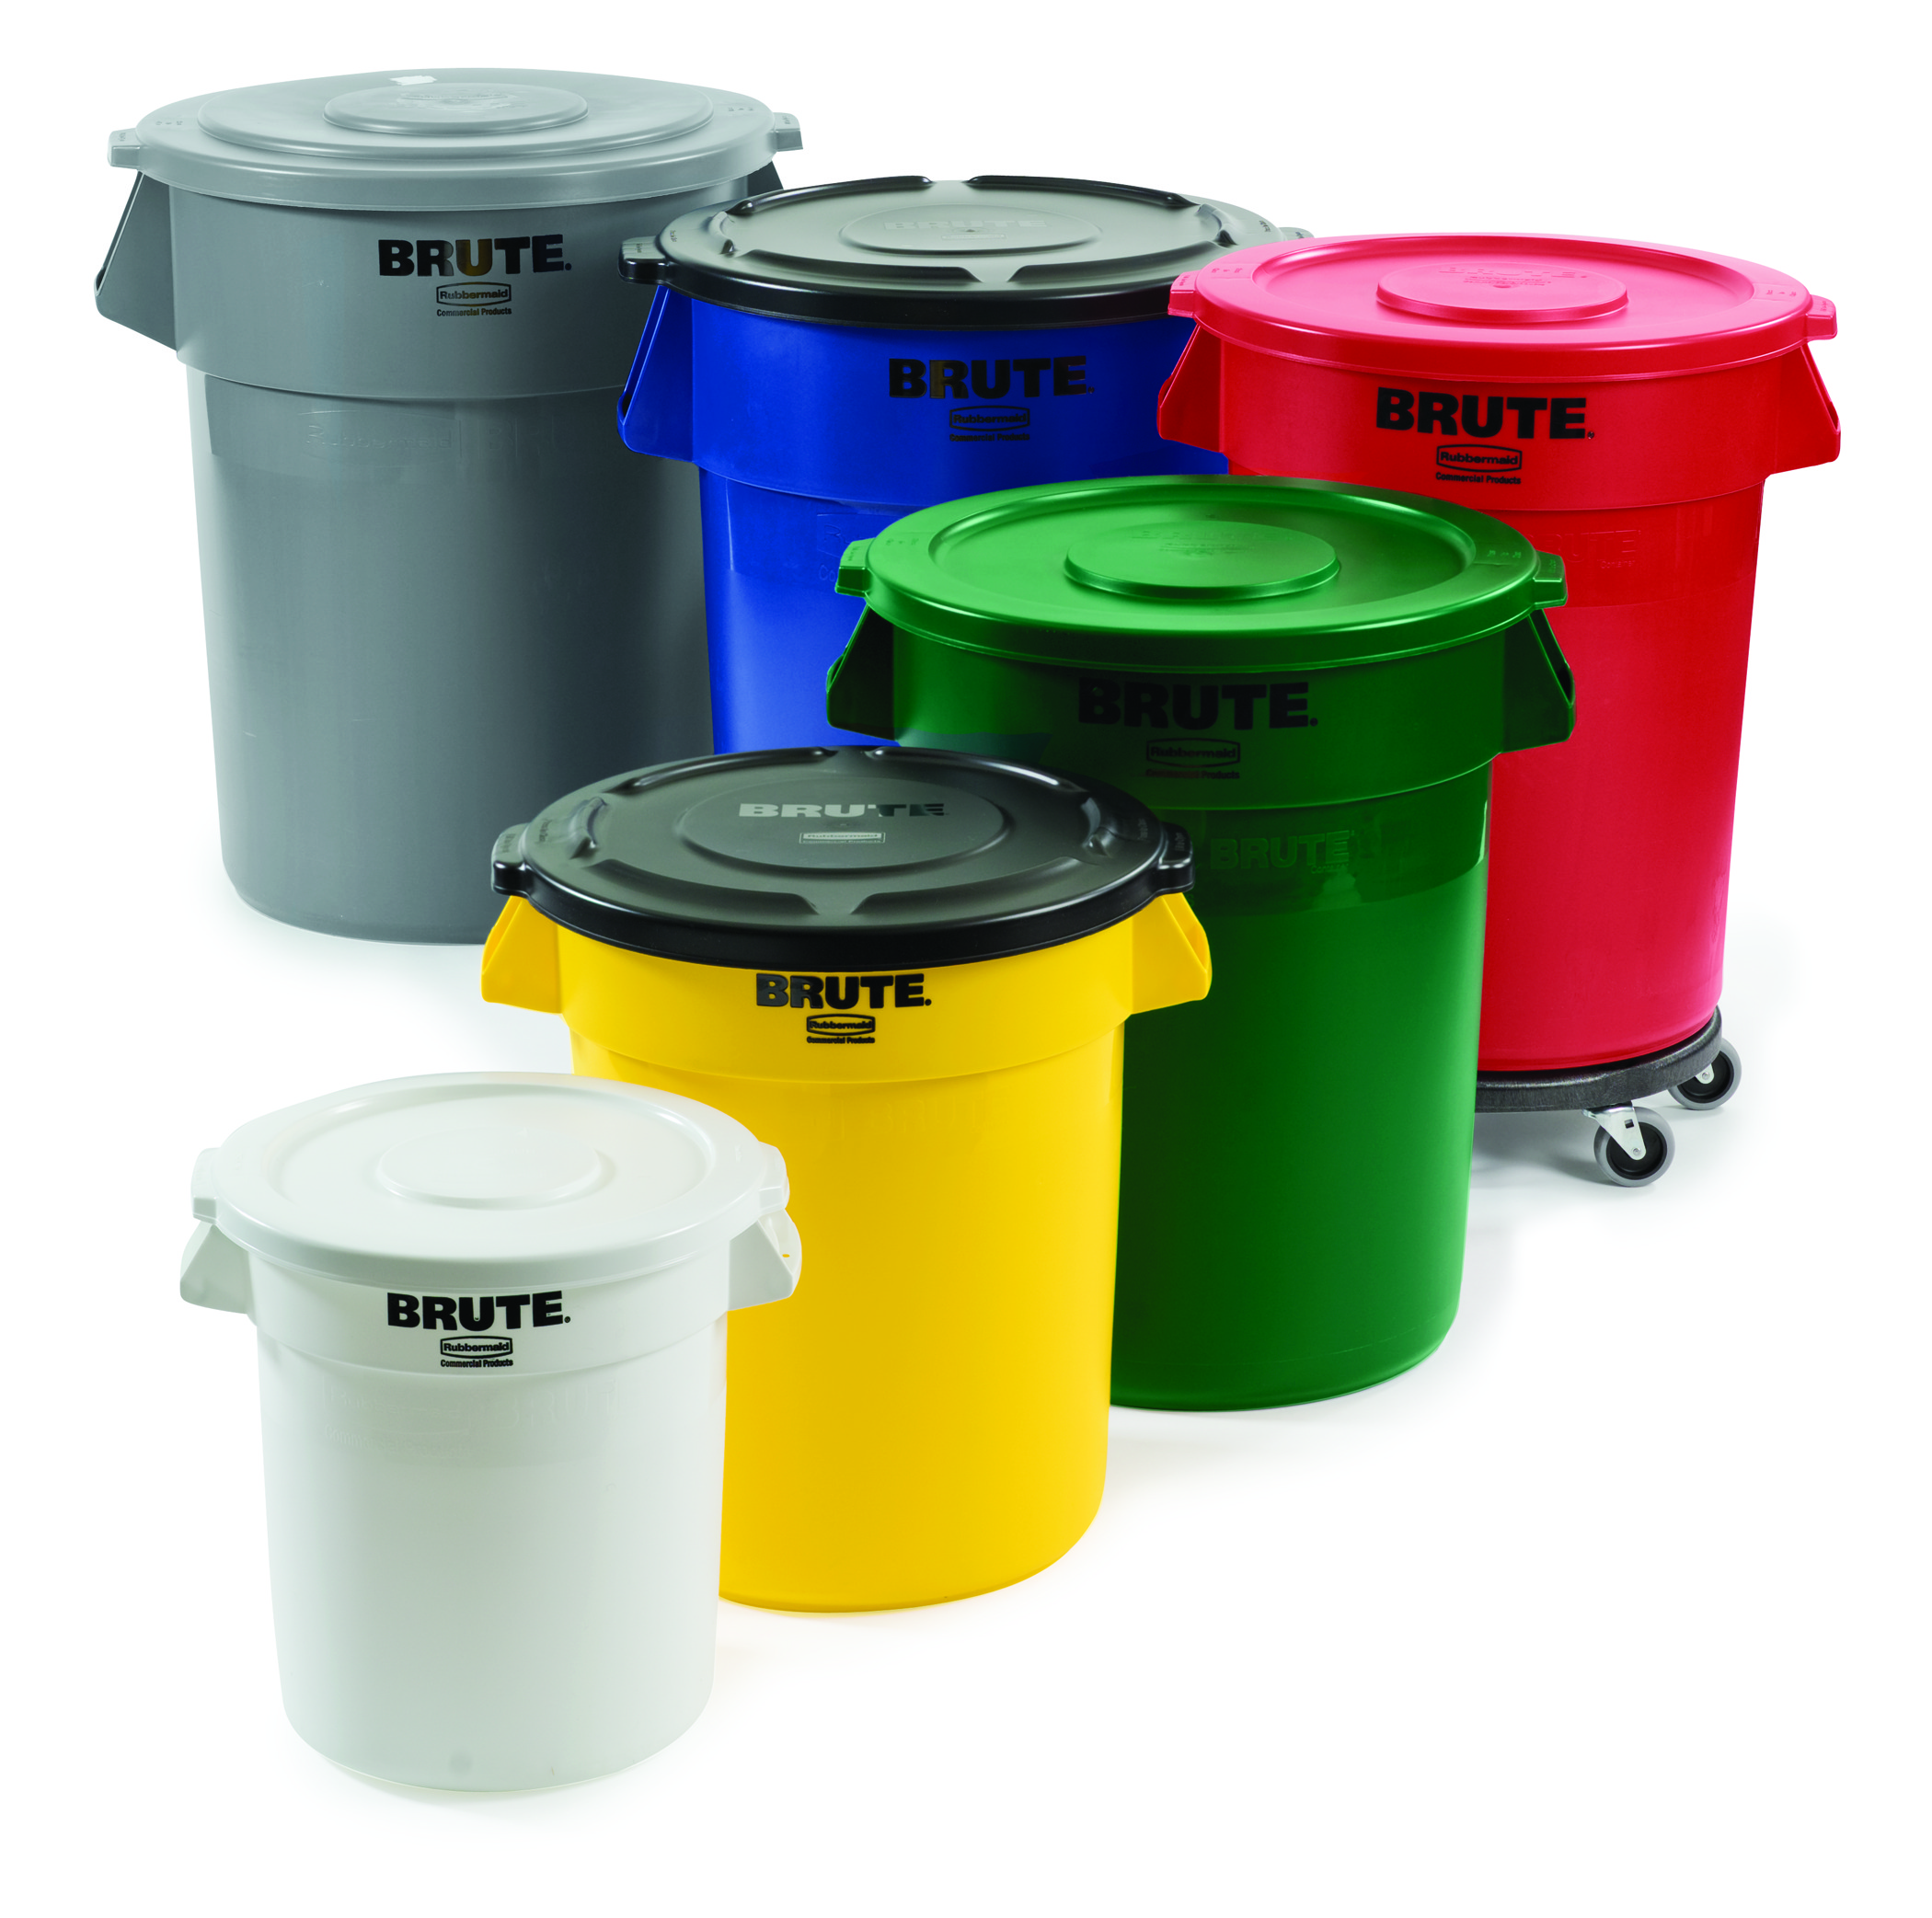 Image Result For Gallon Plastic Containers With Lids